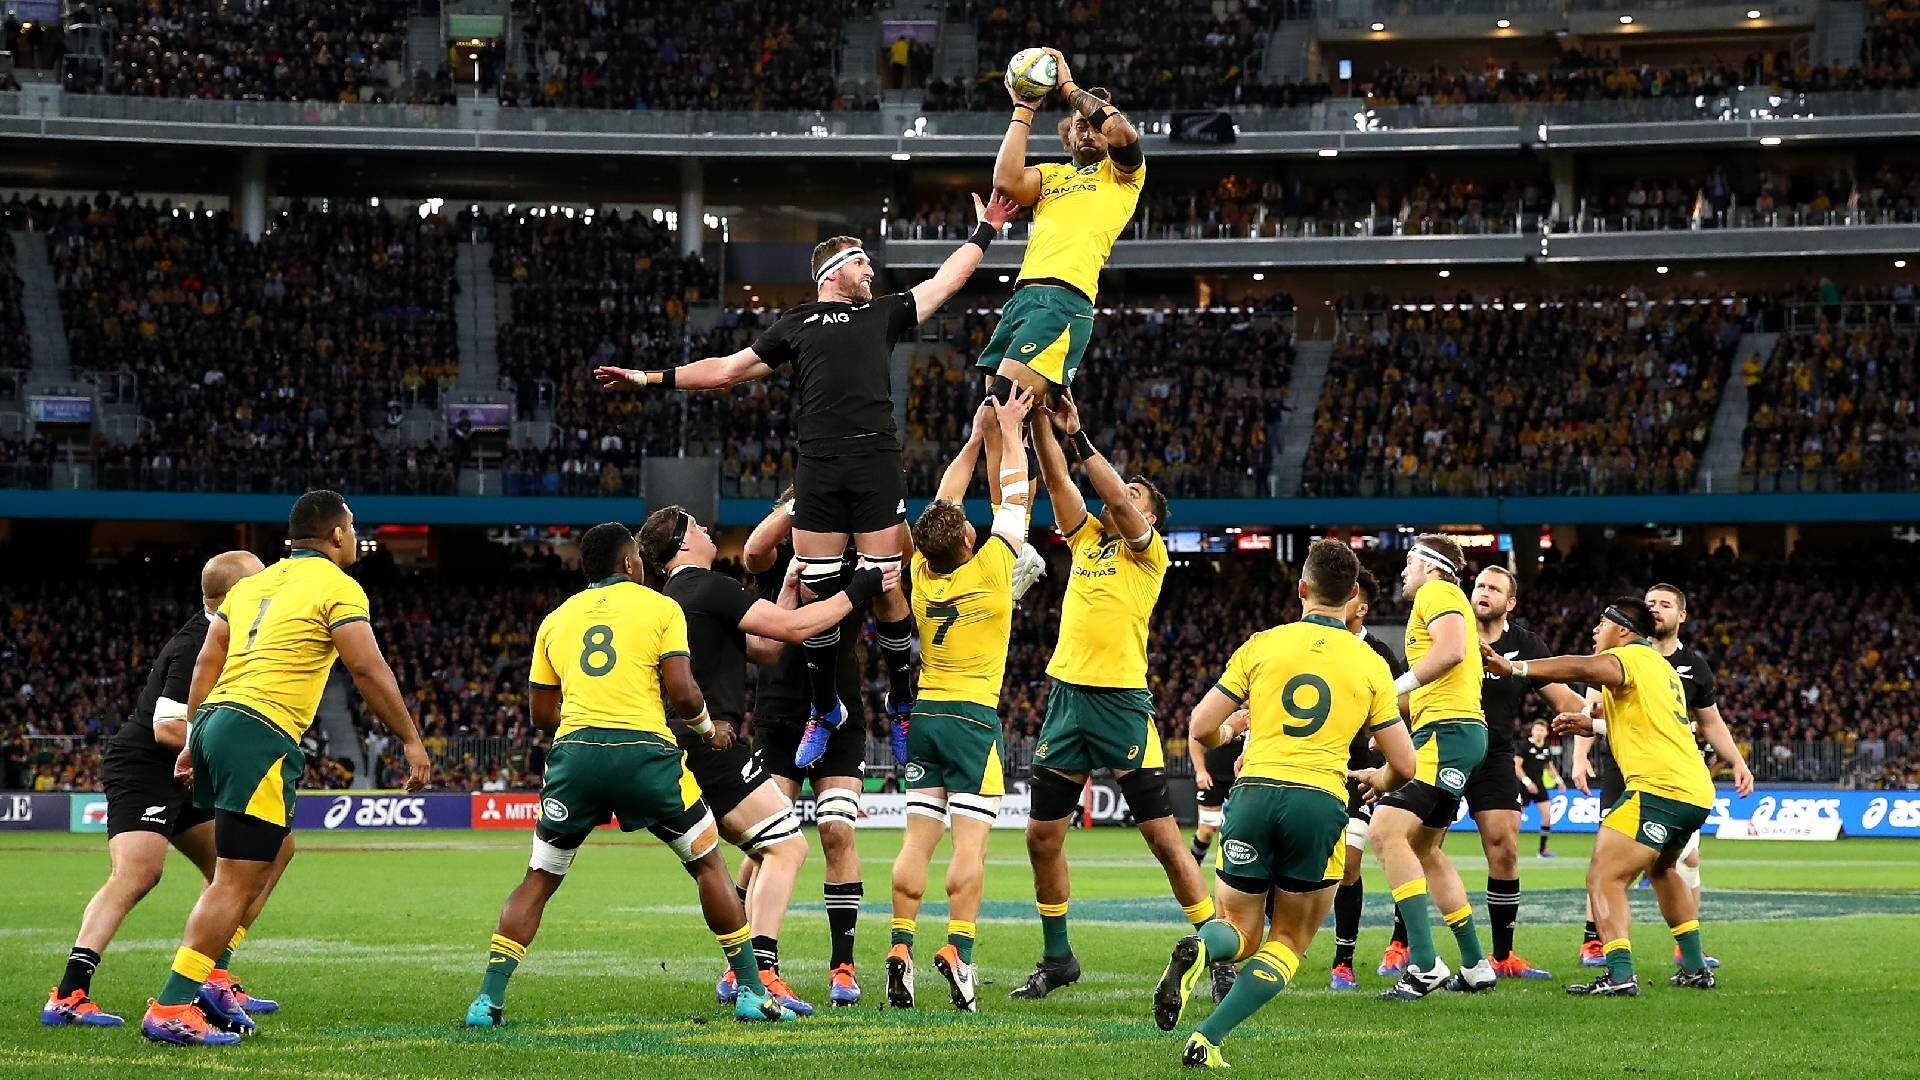 The star players, key facts and who will win: All you need to know about All Blacks vs Wallabies